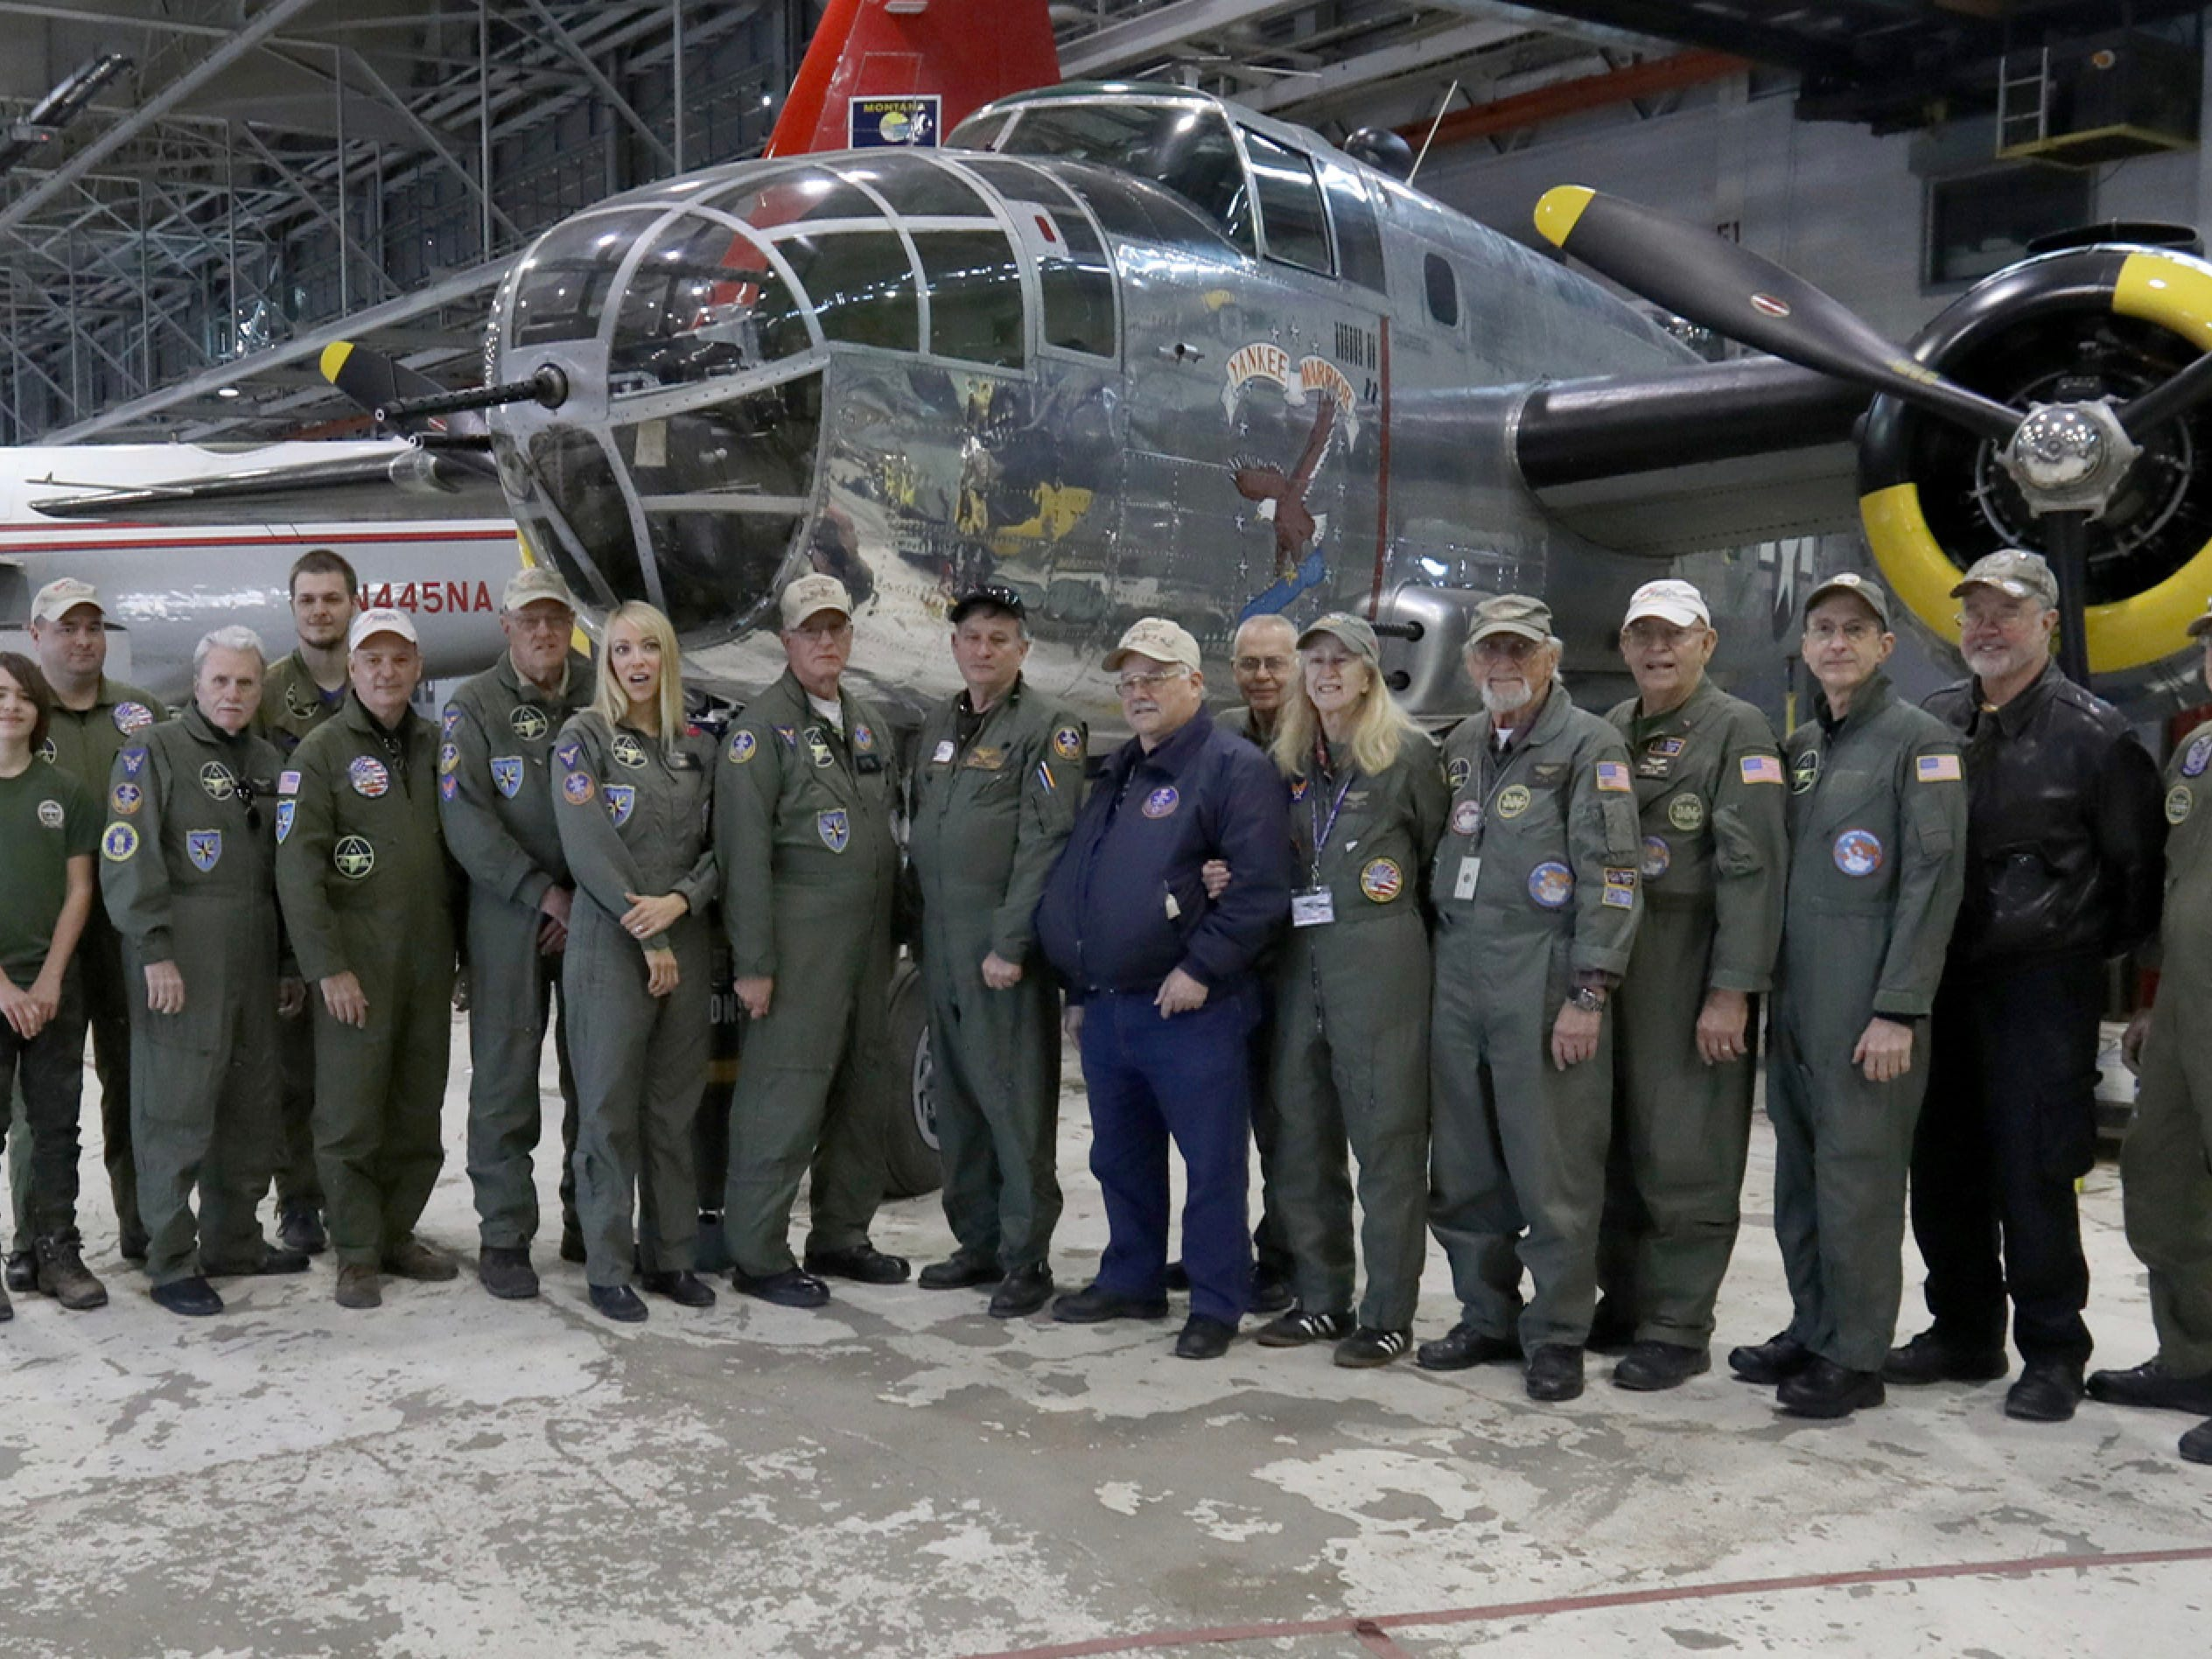 Yankee Air Museum hosts 75th birthday for last WWII bomber of its kind